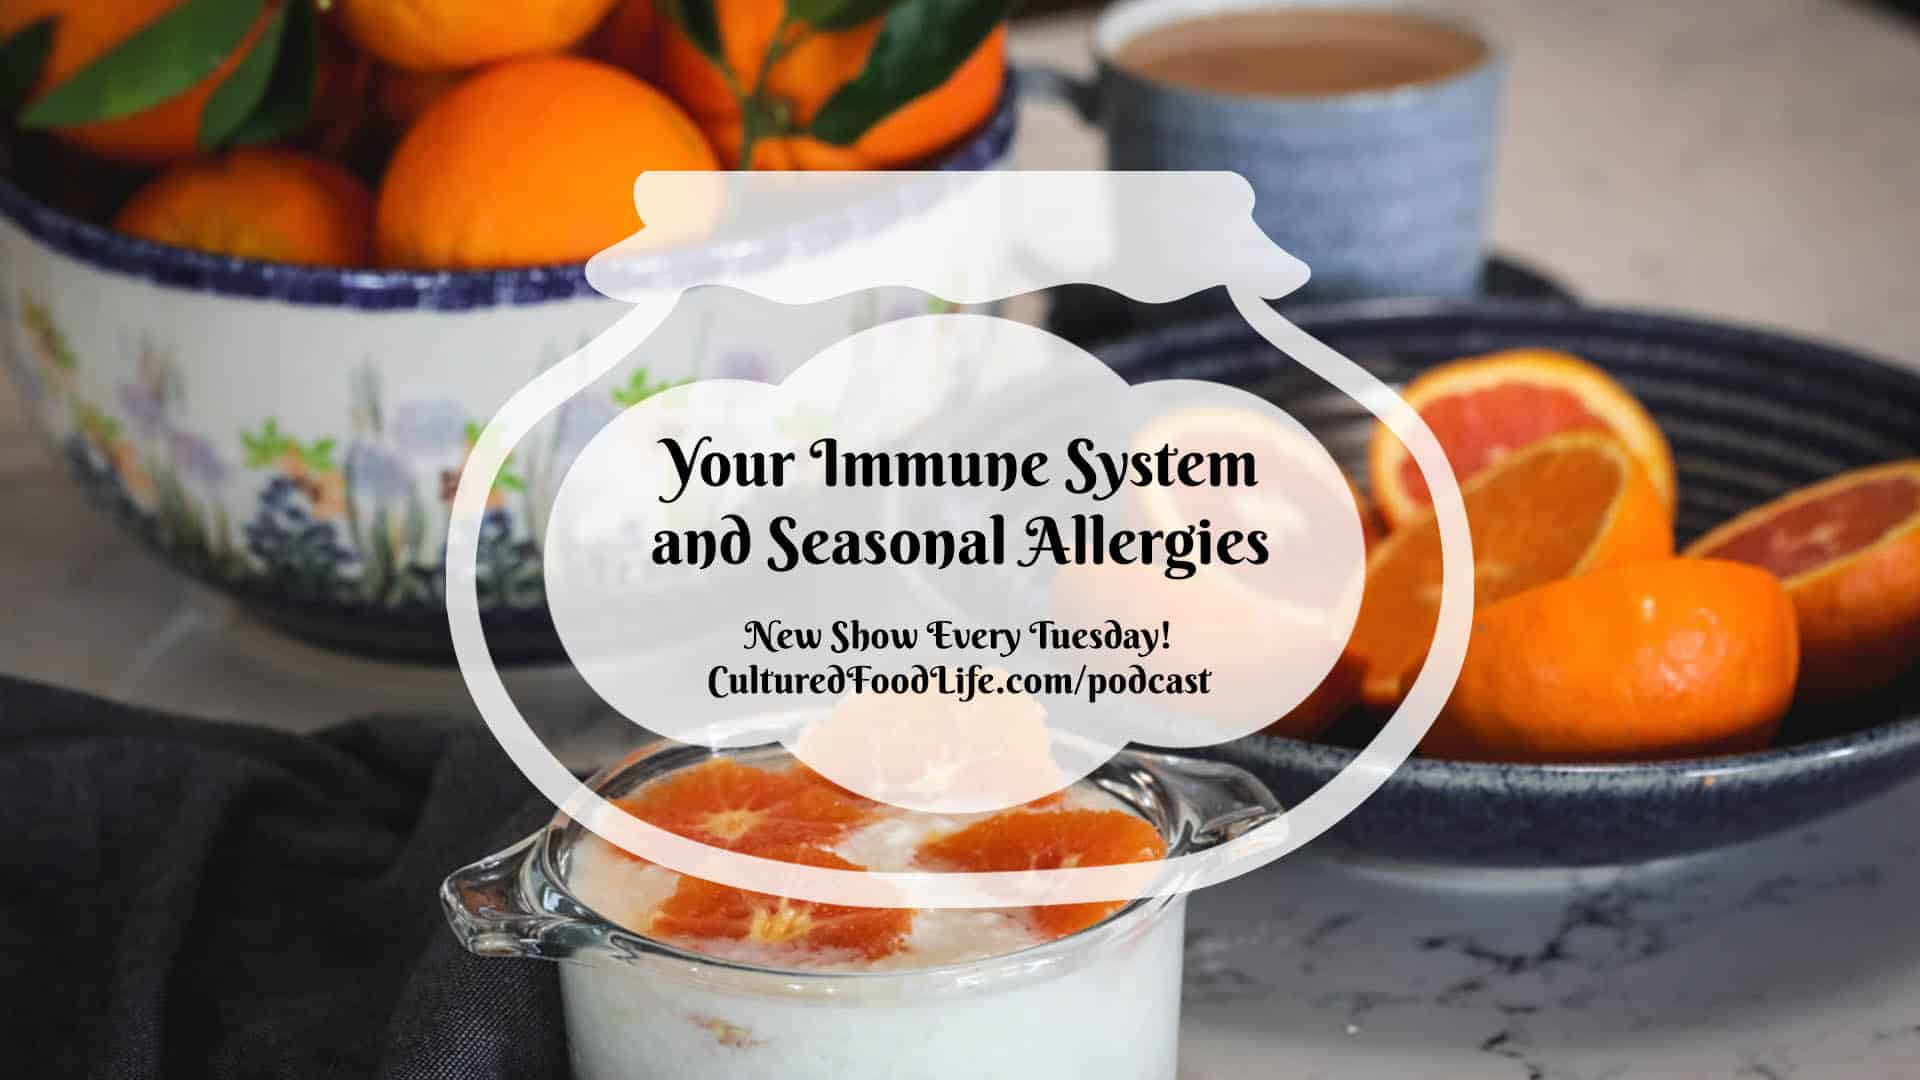 Your Immune System and Seasonal Allergies